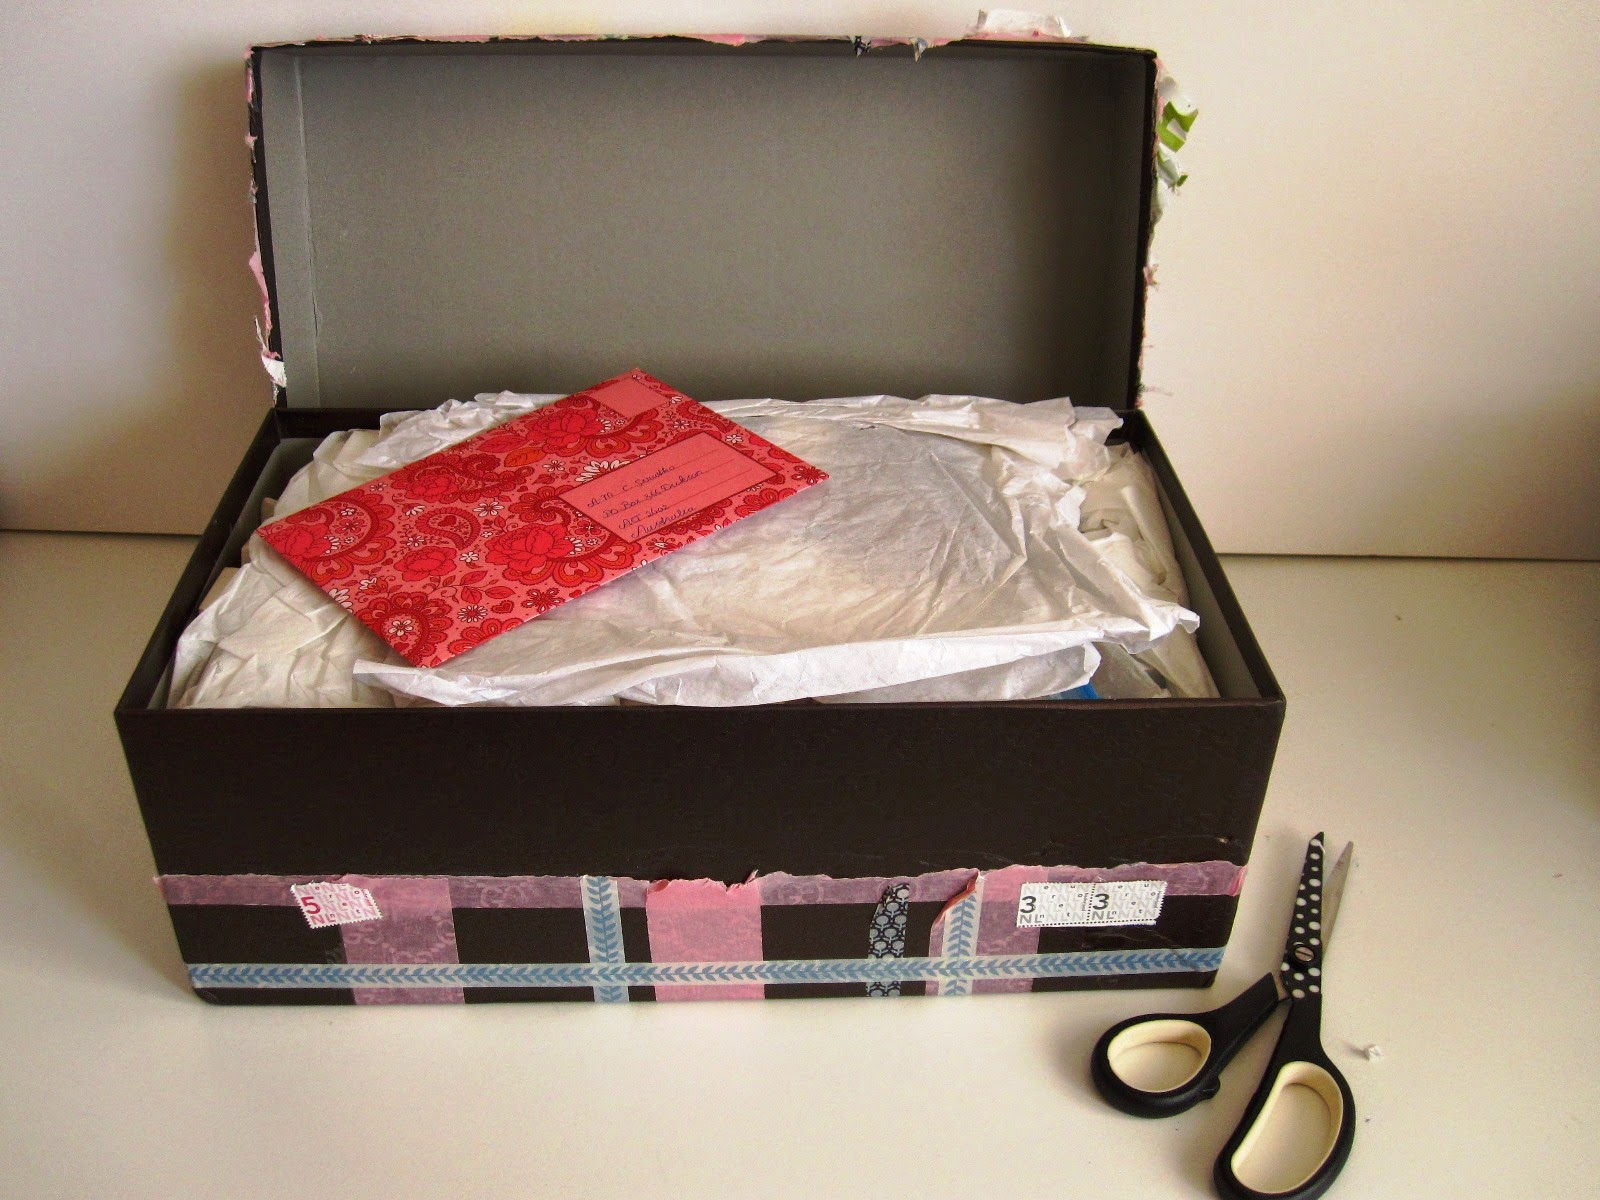 Large washi tape-wrapped shoebox with lid off, showing tissue paper and a colourful envelope on top of it.